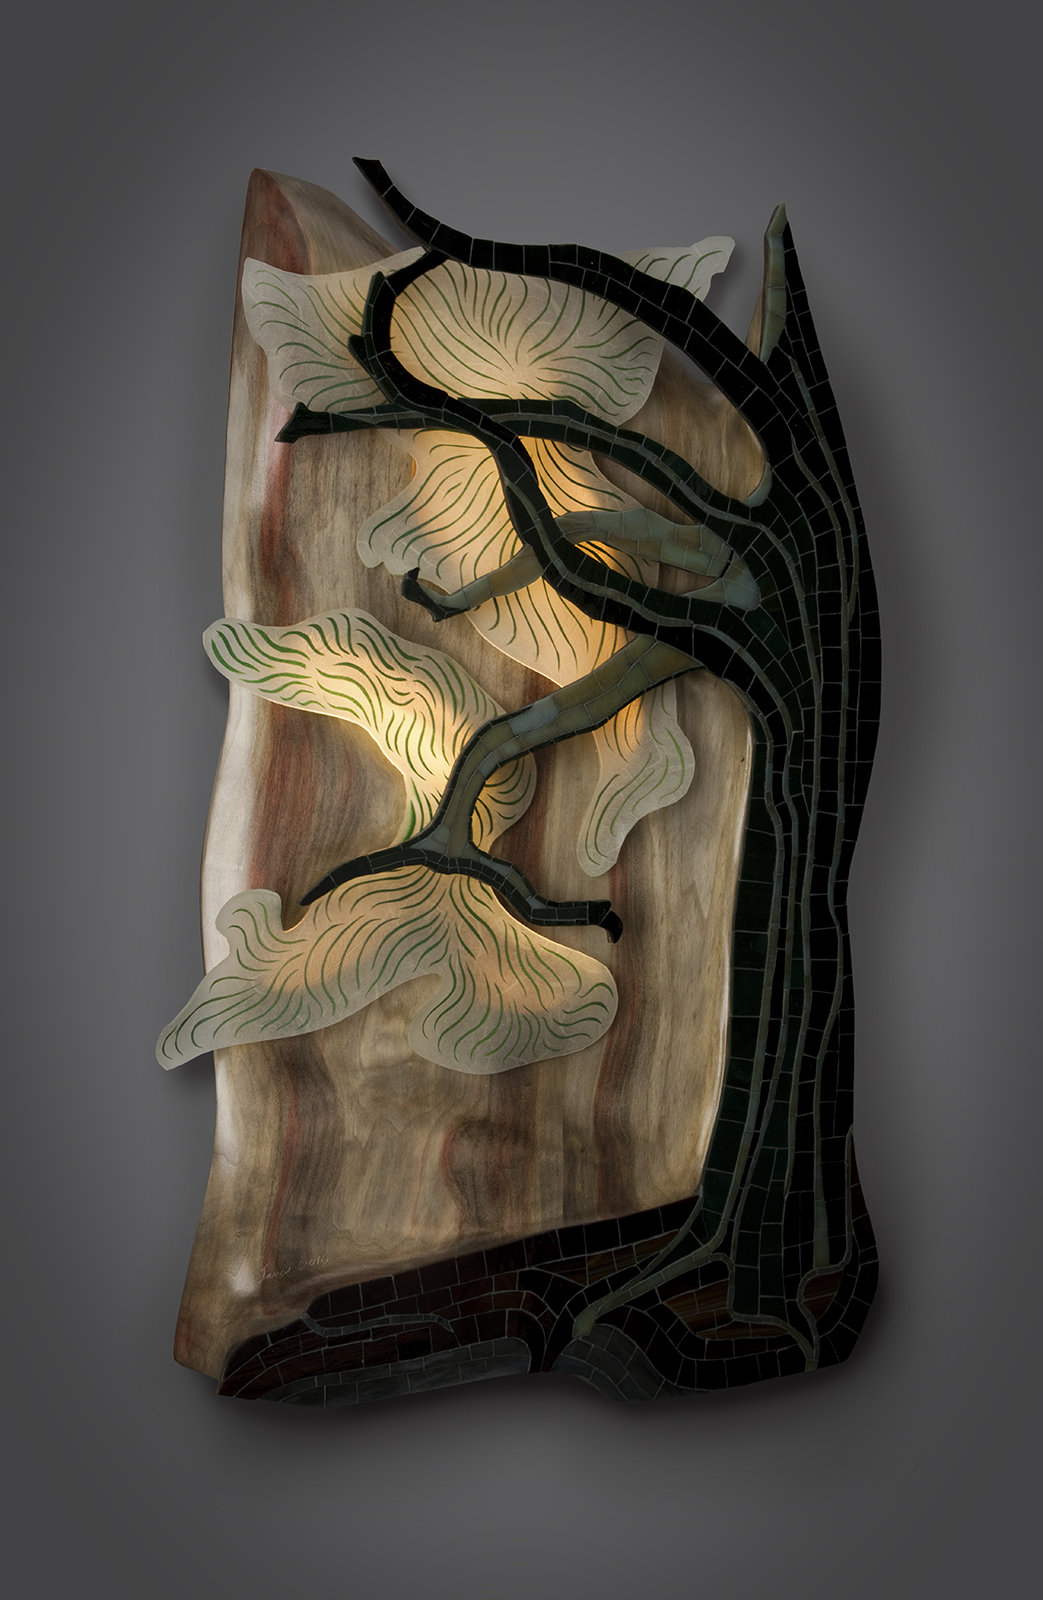 Bonsai By Aaron Laux Wood Wall Sculpture Artful Home